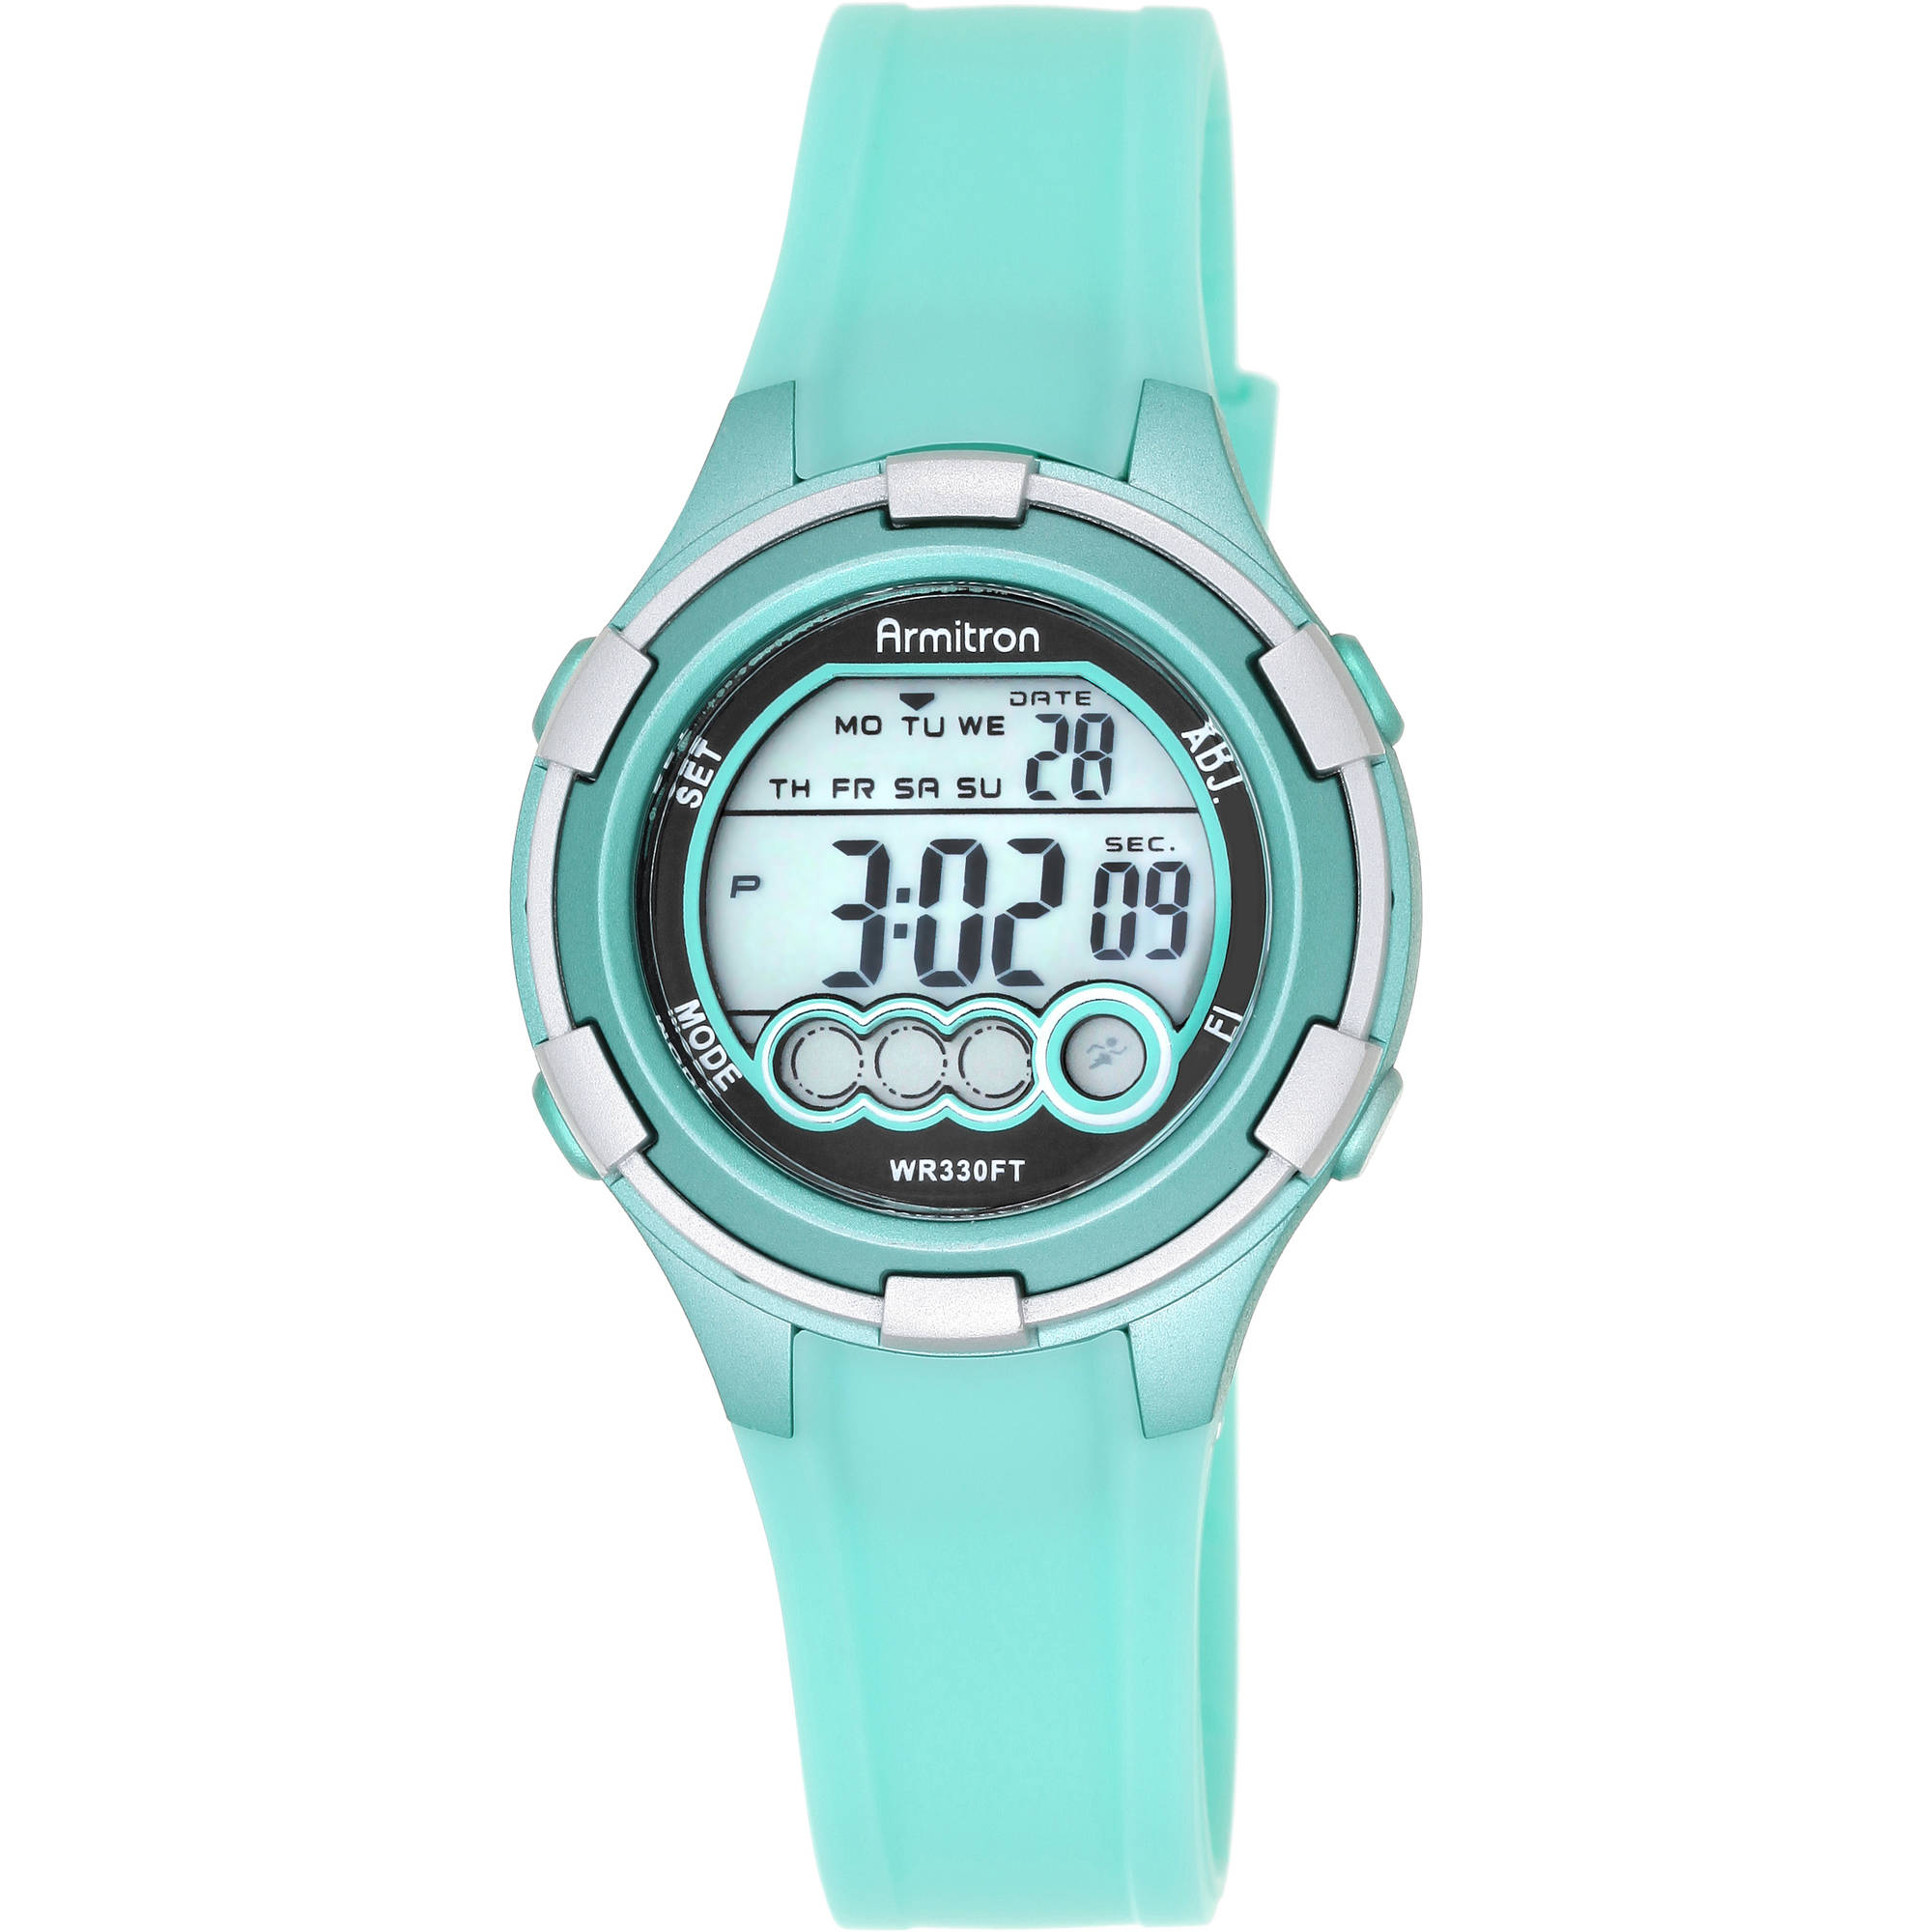 Armitron Women's Round Sport Watch, Light Green